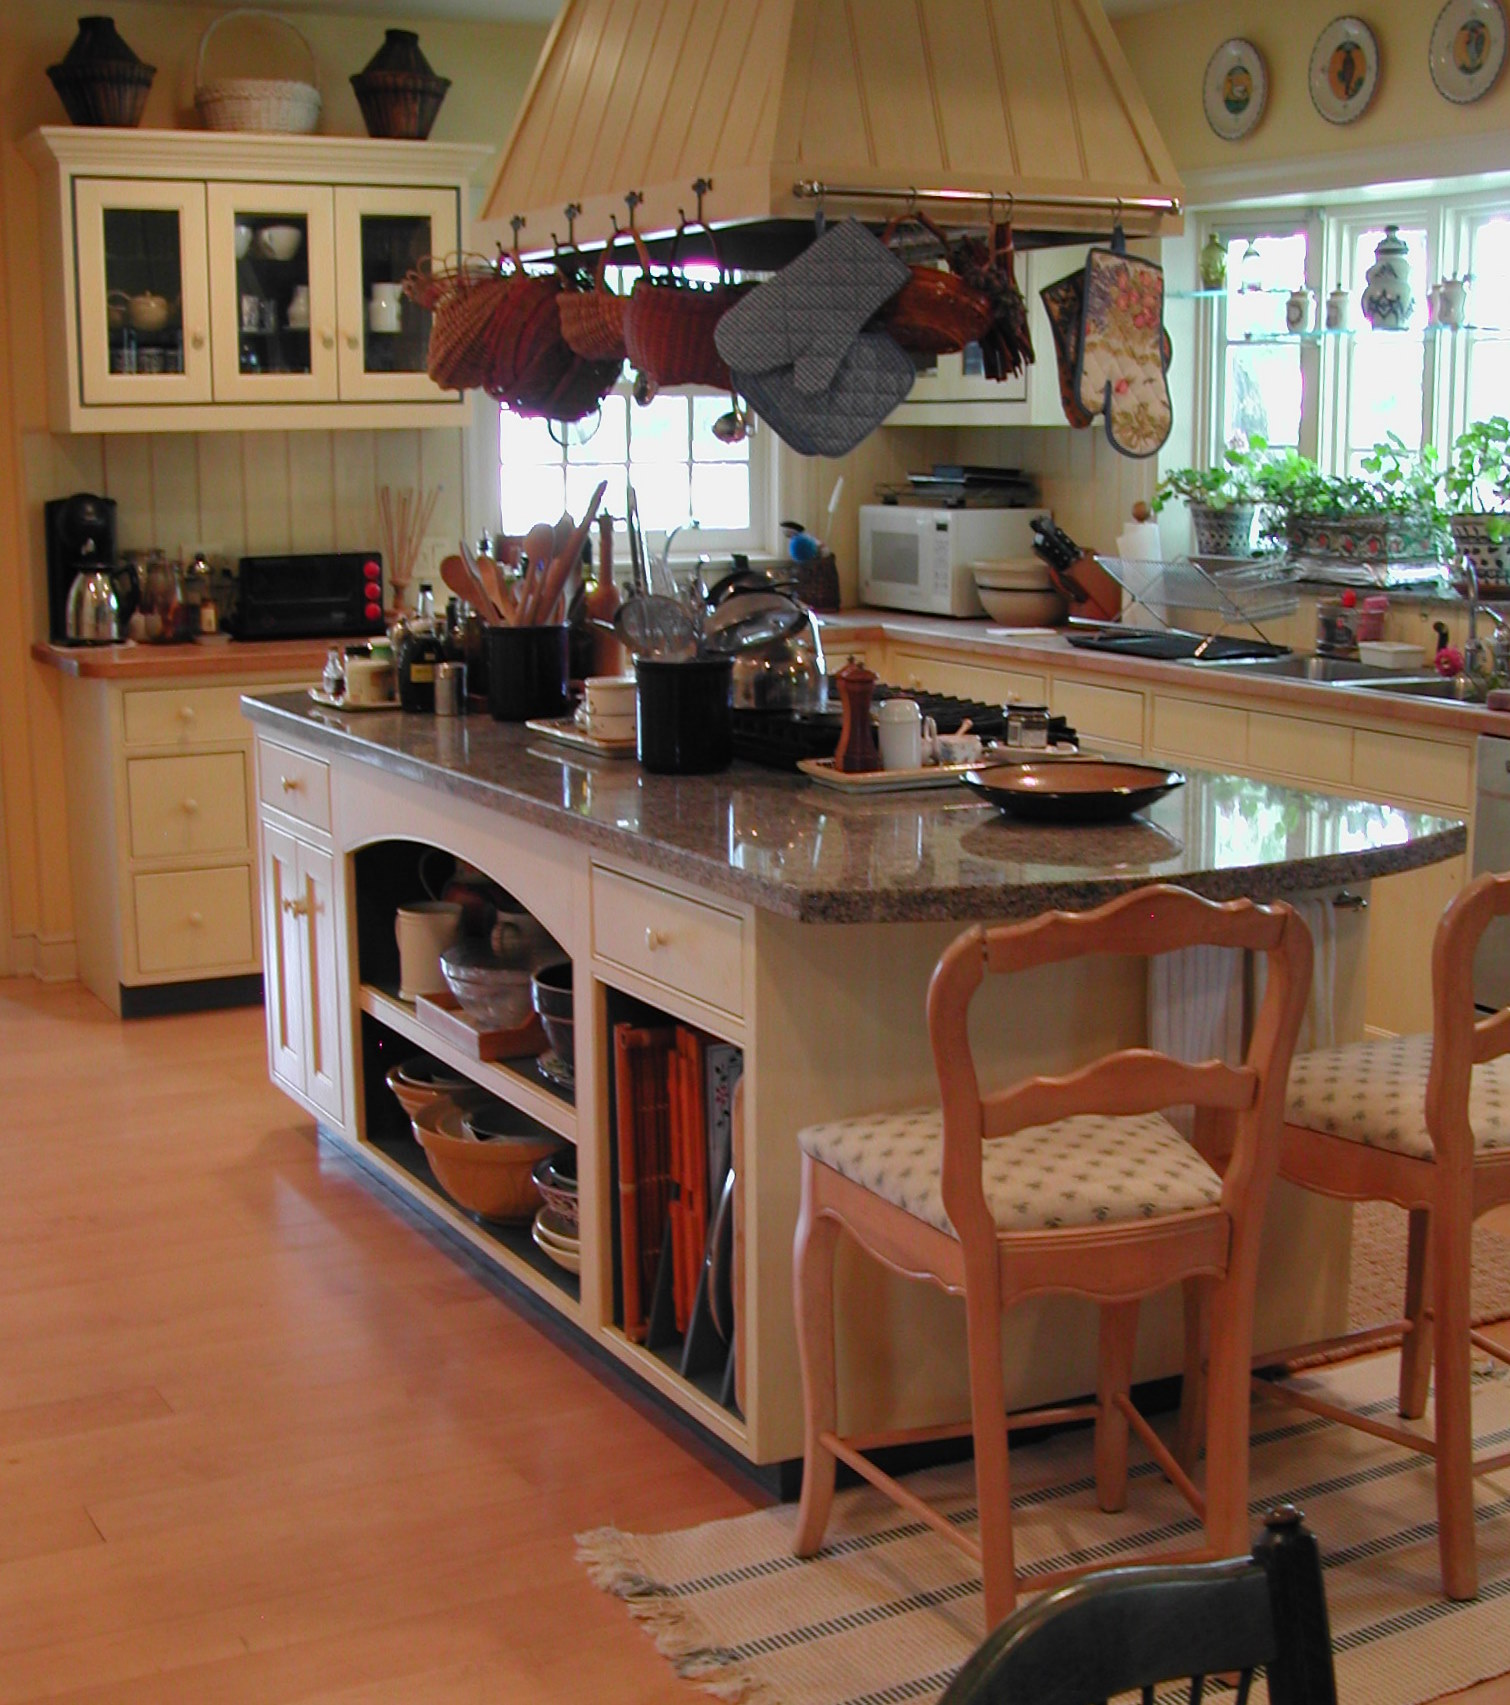 All the cabinetry was custom built. The owners are both passionate about cooking.